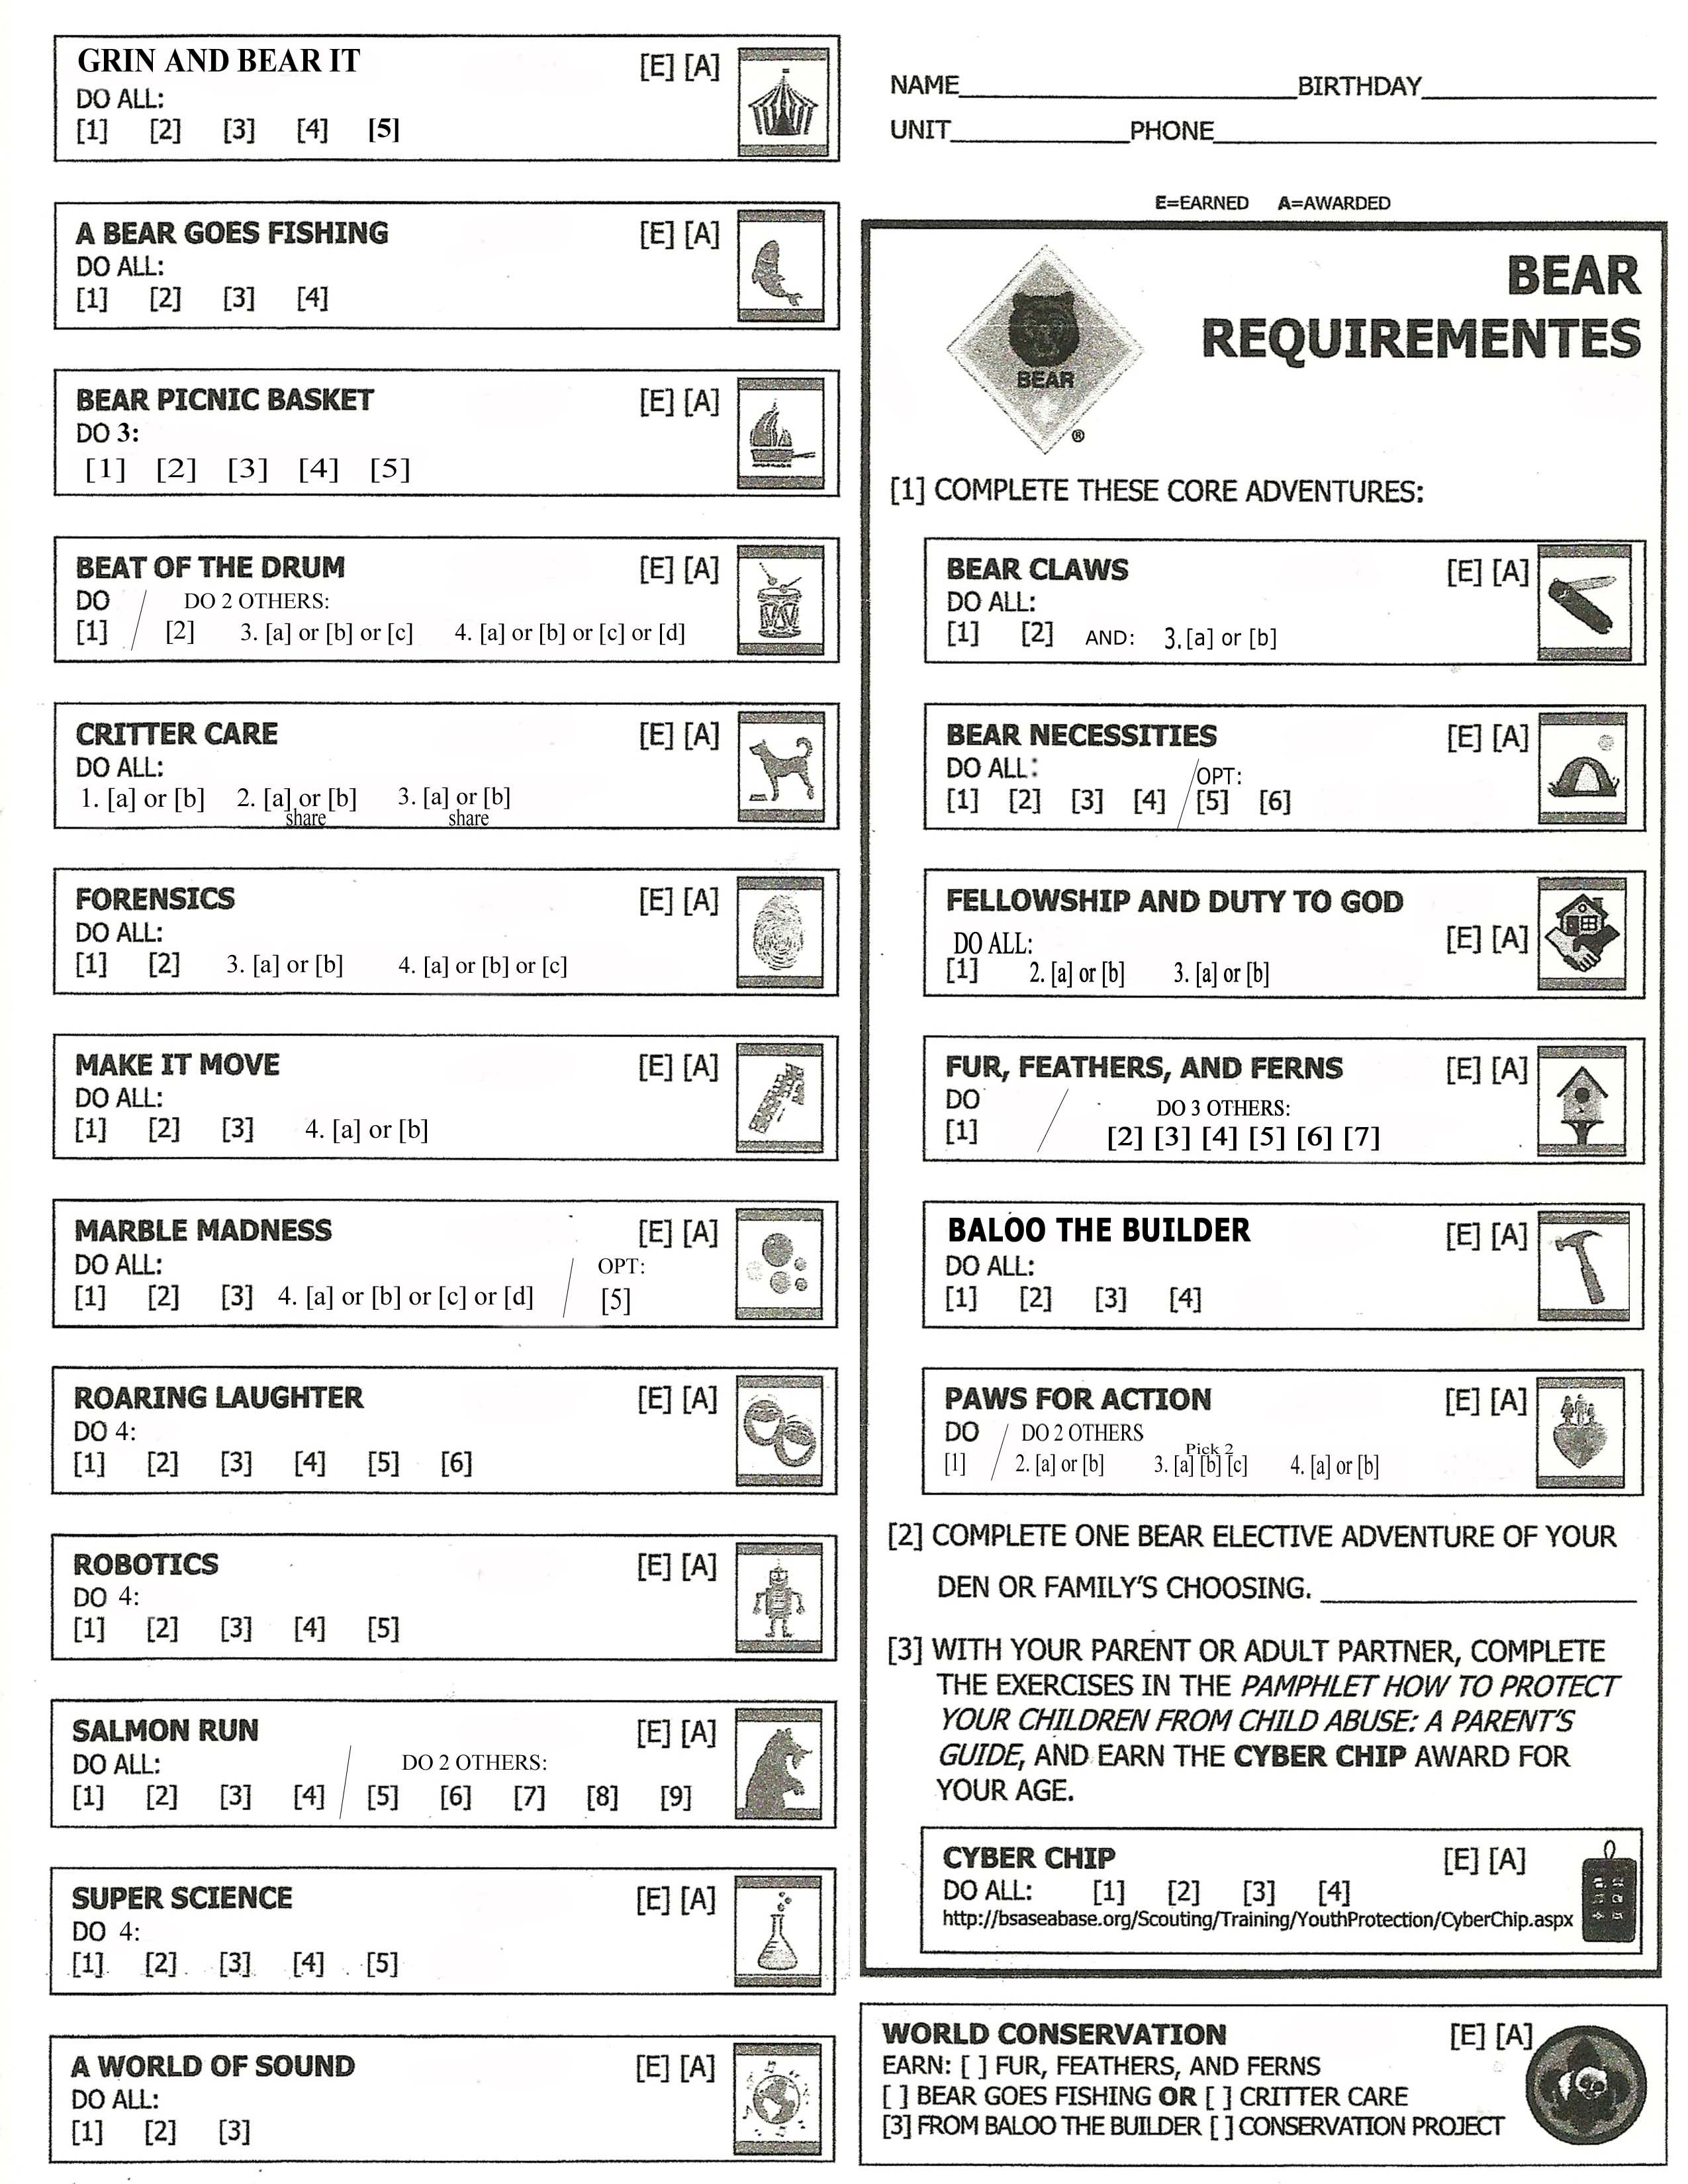 Bear Cub Scout Updated Requirements tracking sheet | Cub